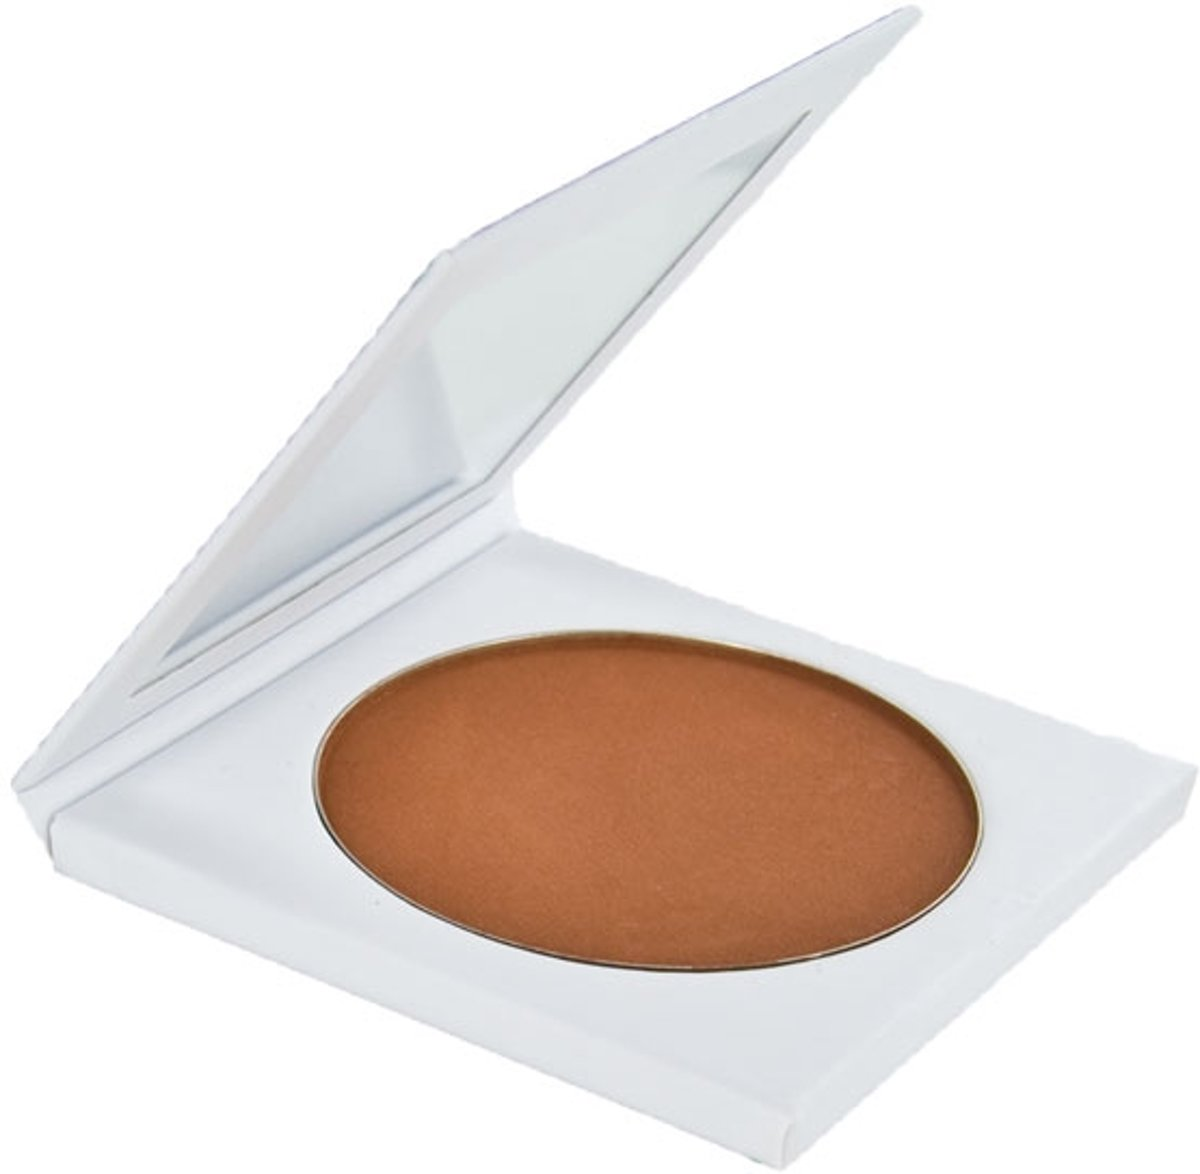 PHB Pressed foundation: cocoa